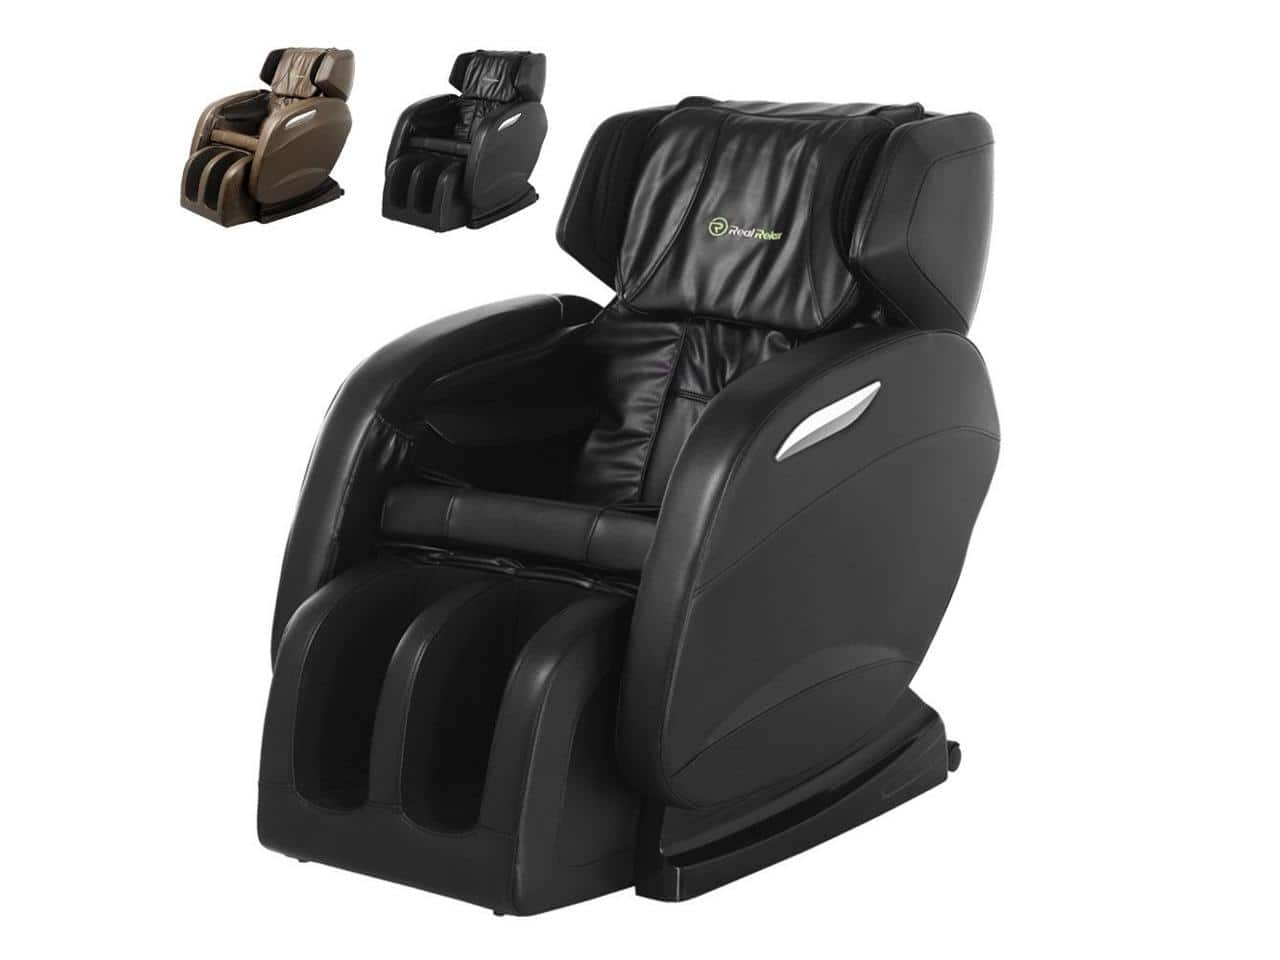 furniture catalog alt recliners kohls s massage chair kohl jsp